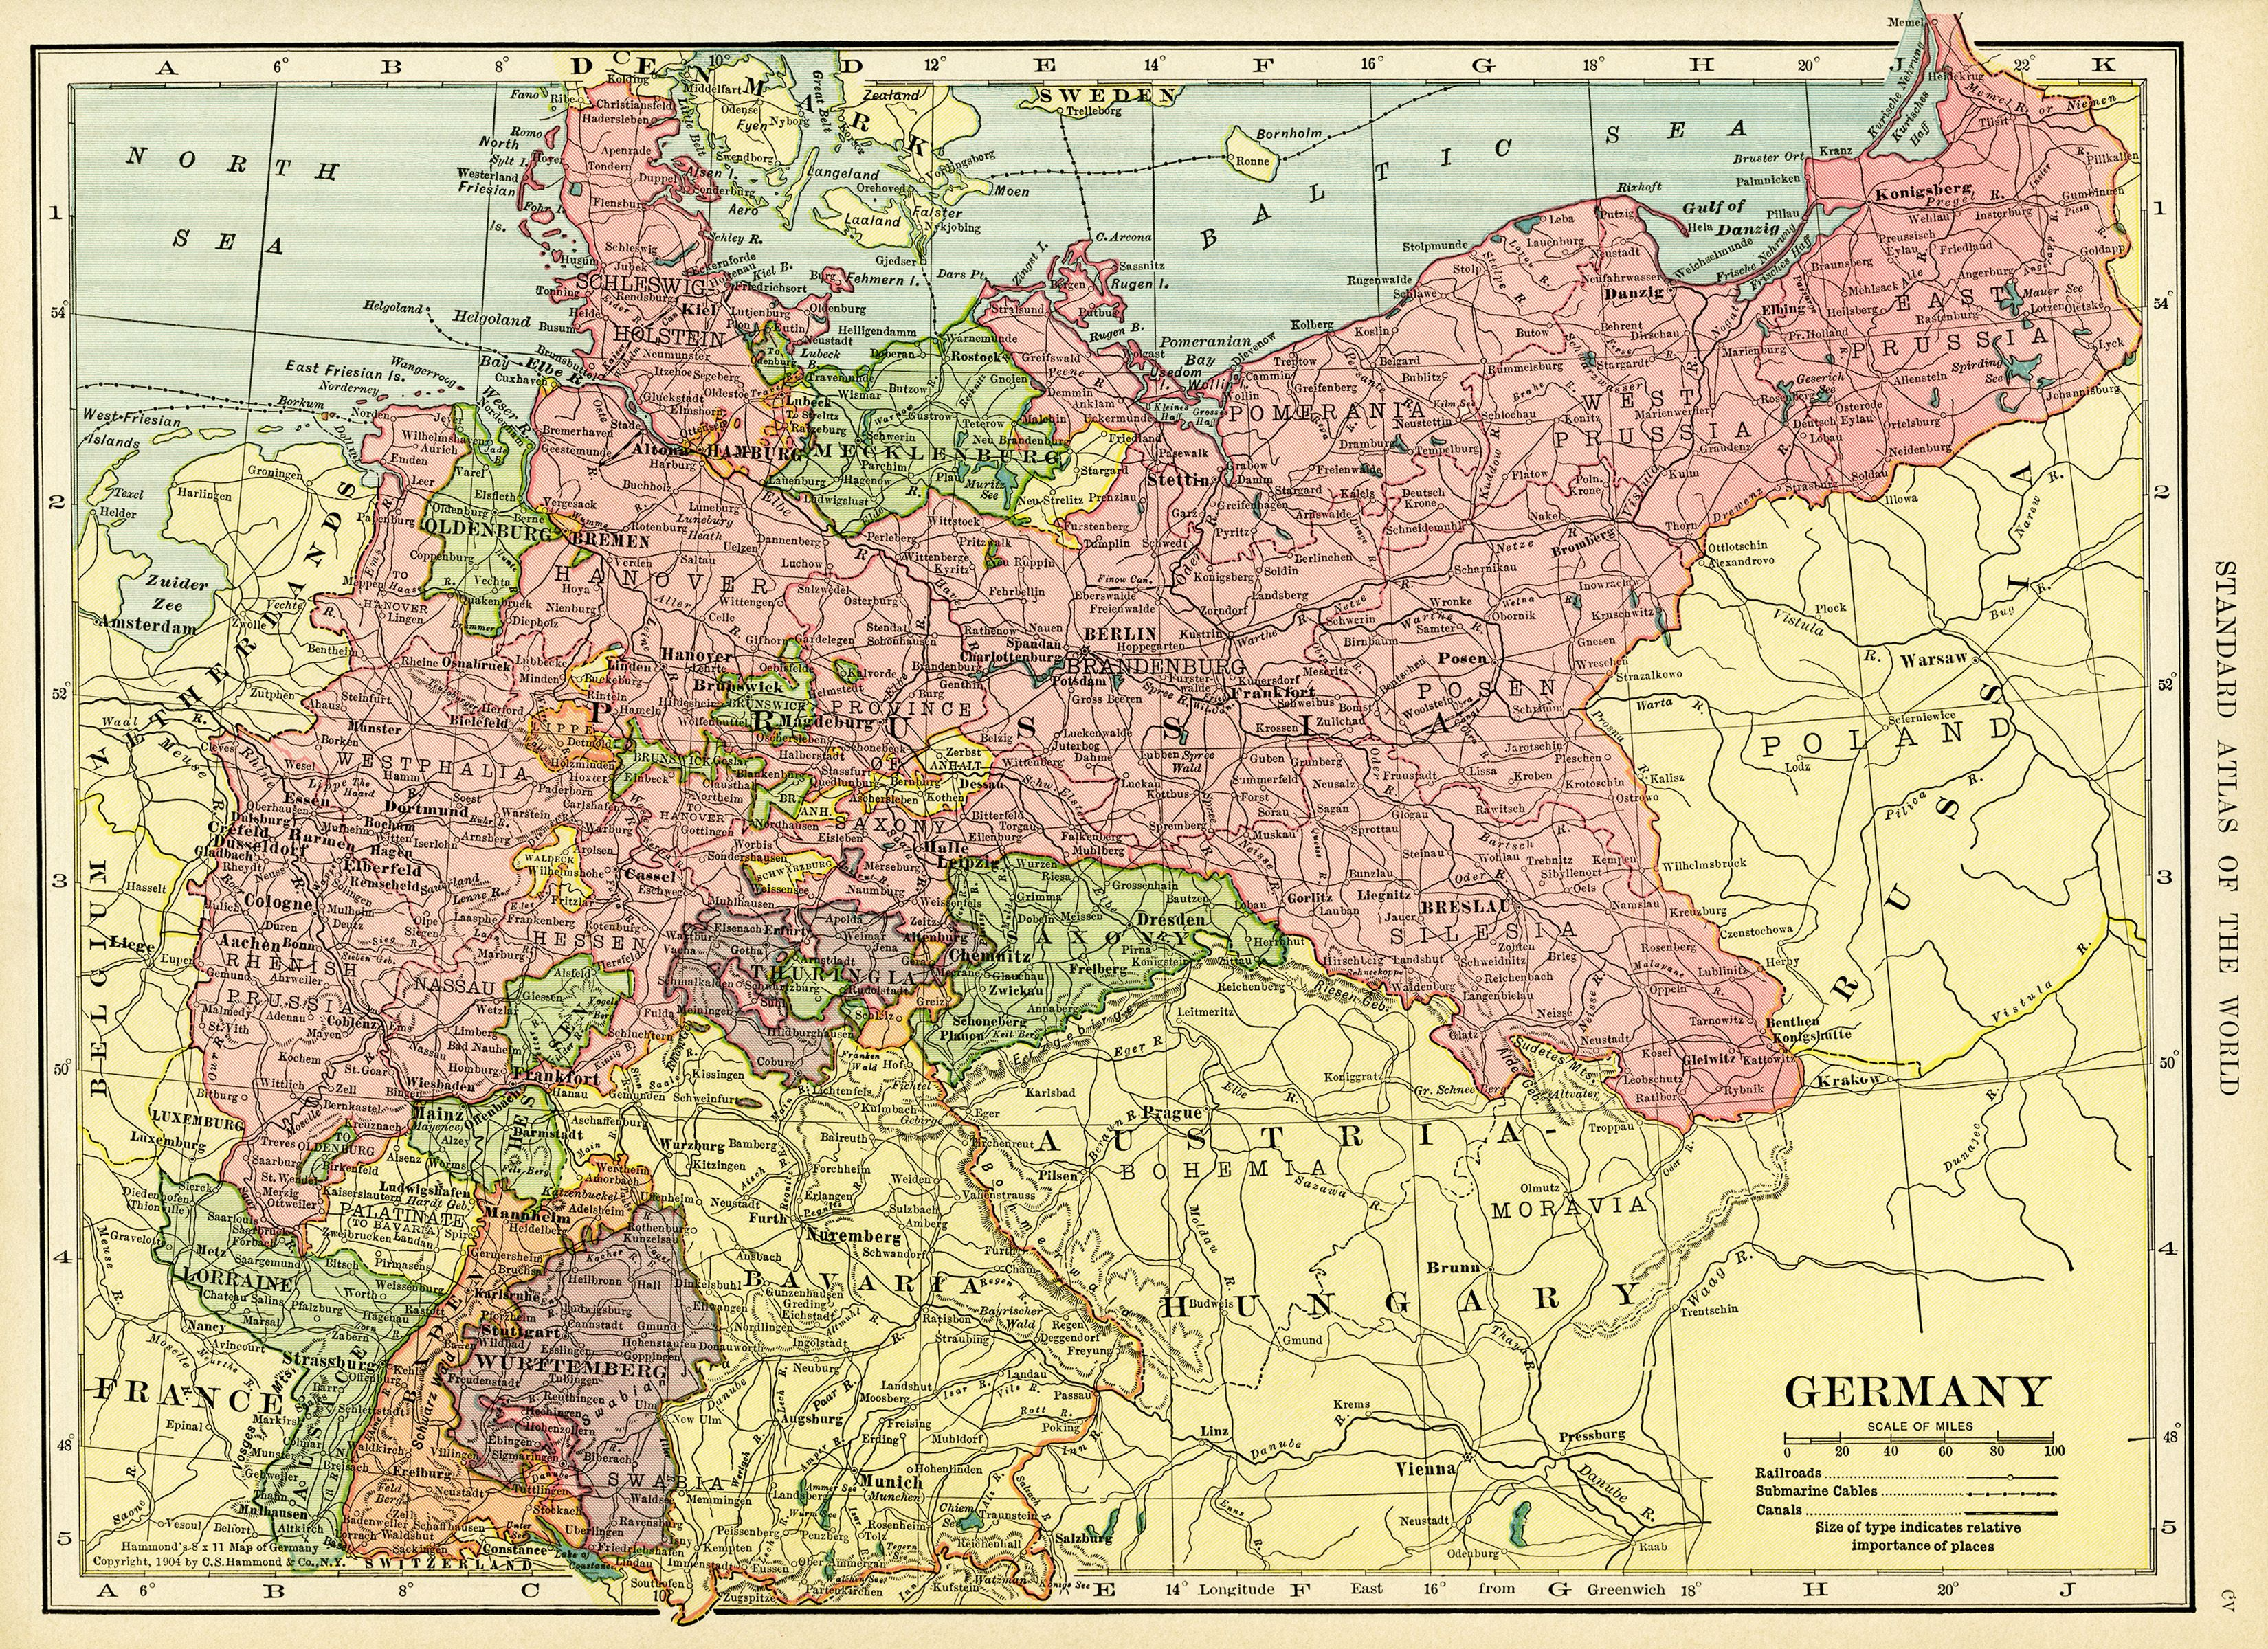 Map Of Germany 1900.Antique Map C S Hammond Map History Geography Germany Old Map